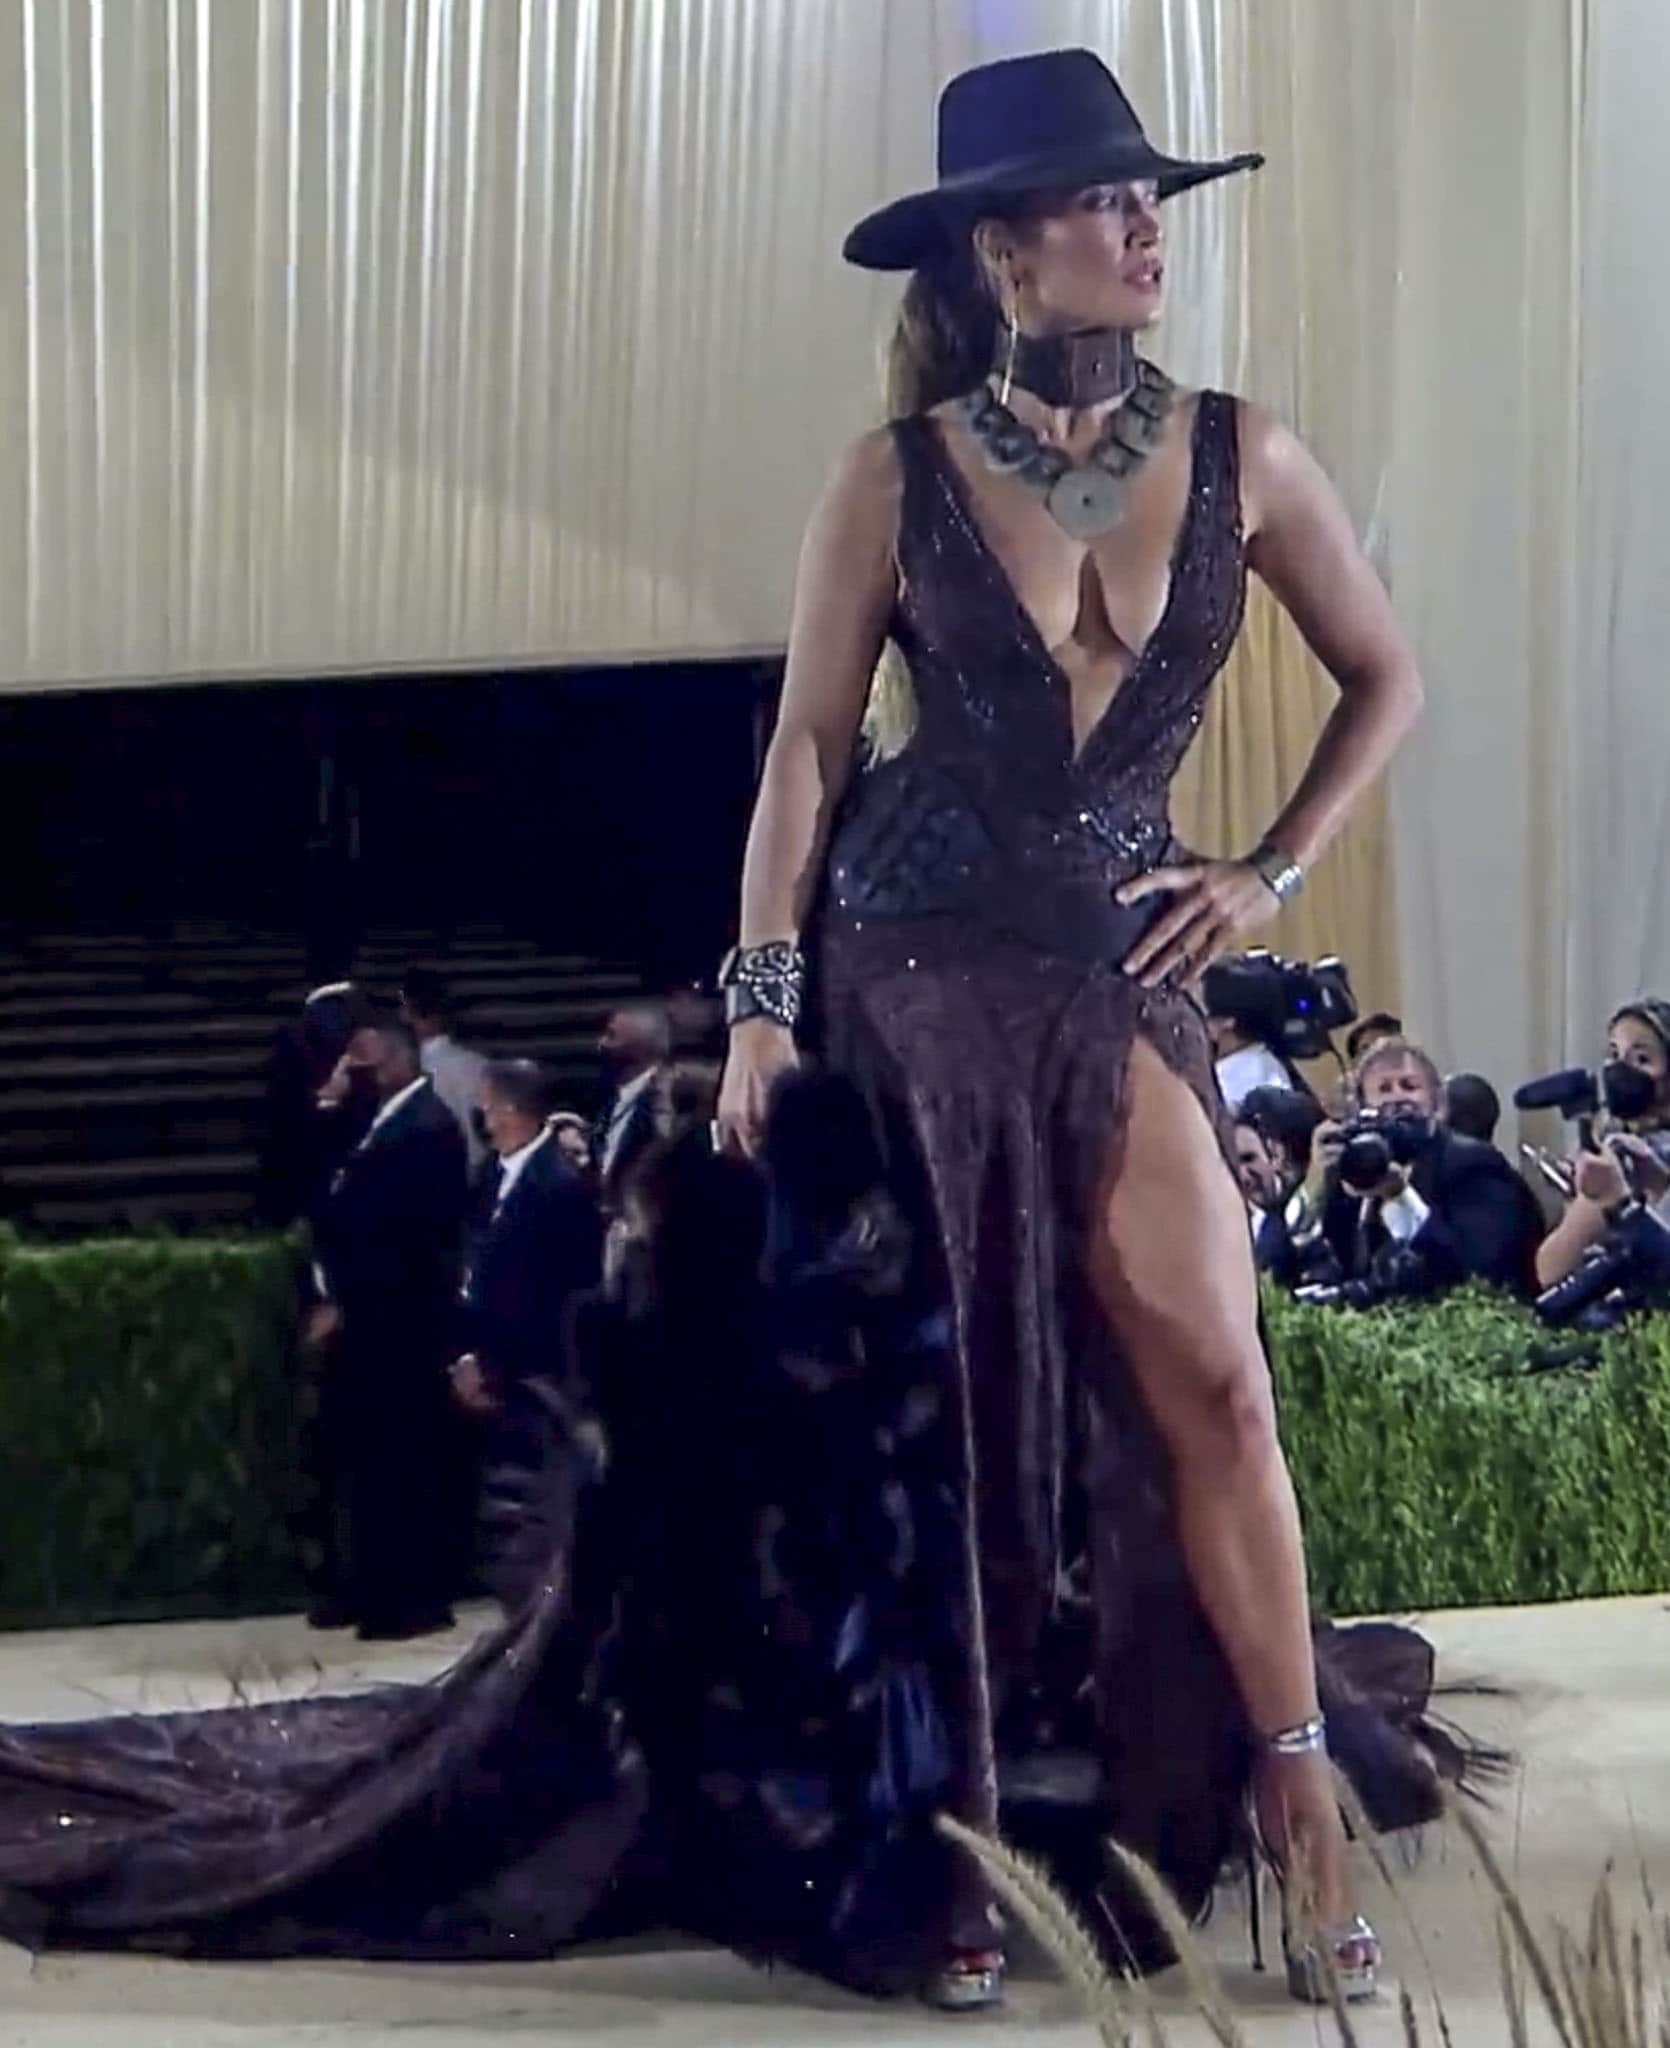 Jennifer Lopez embraces the wild, wild west in Ralph Lauren gown at the 2021 Met Gala on September 13, 2021